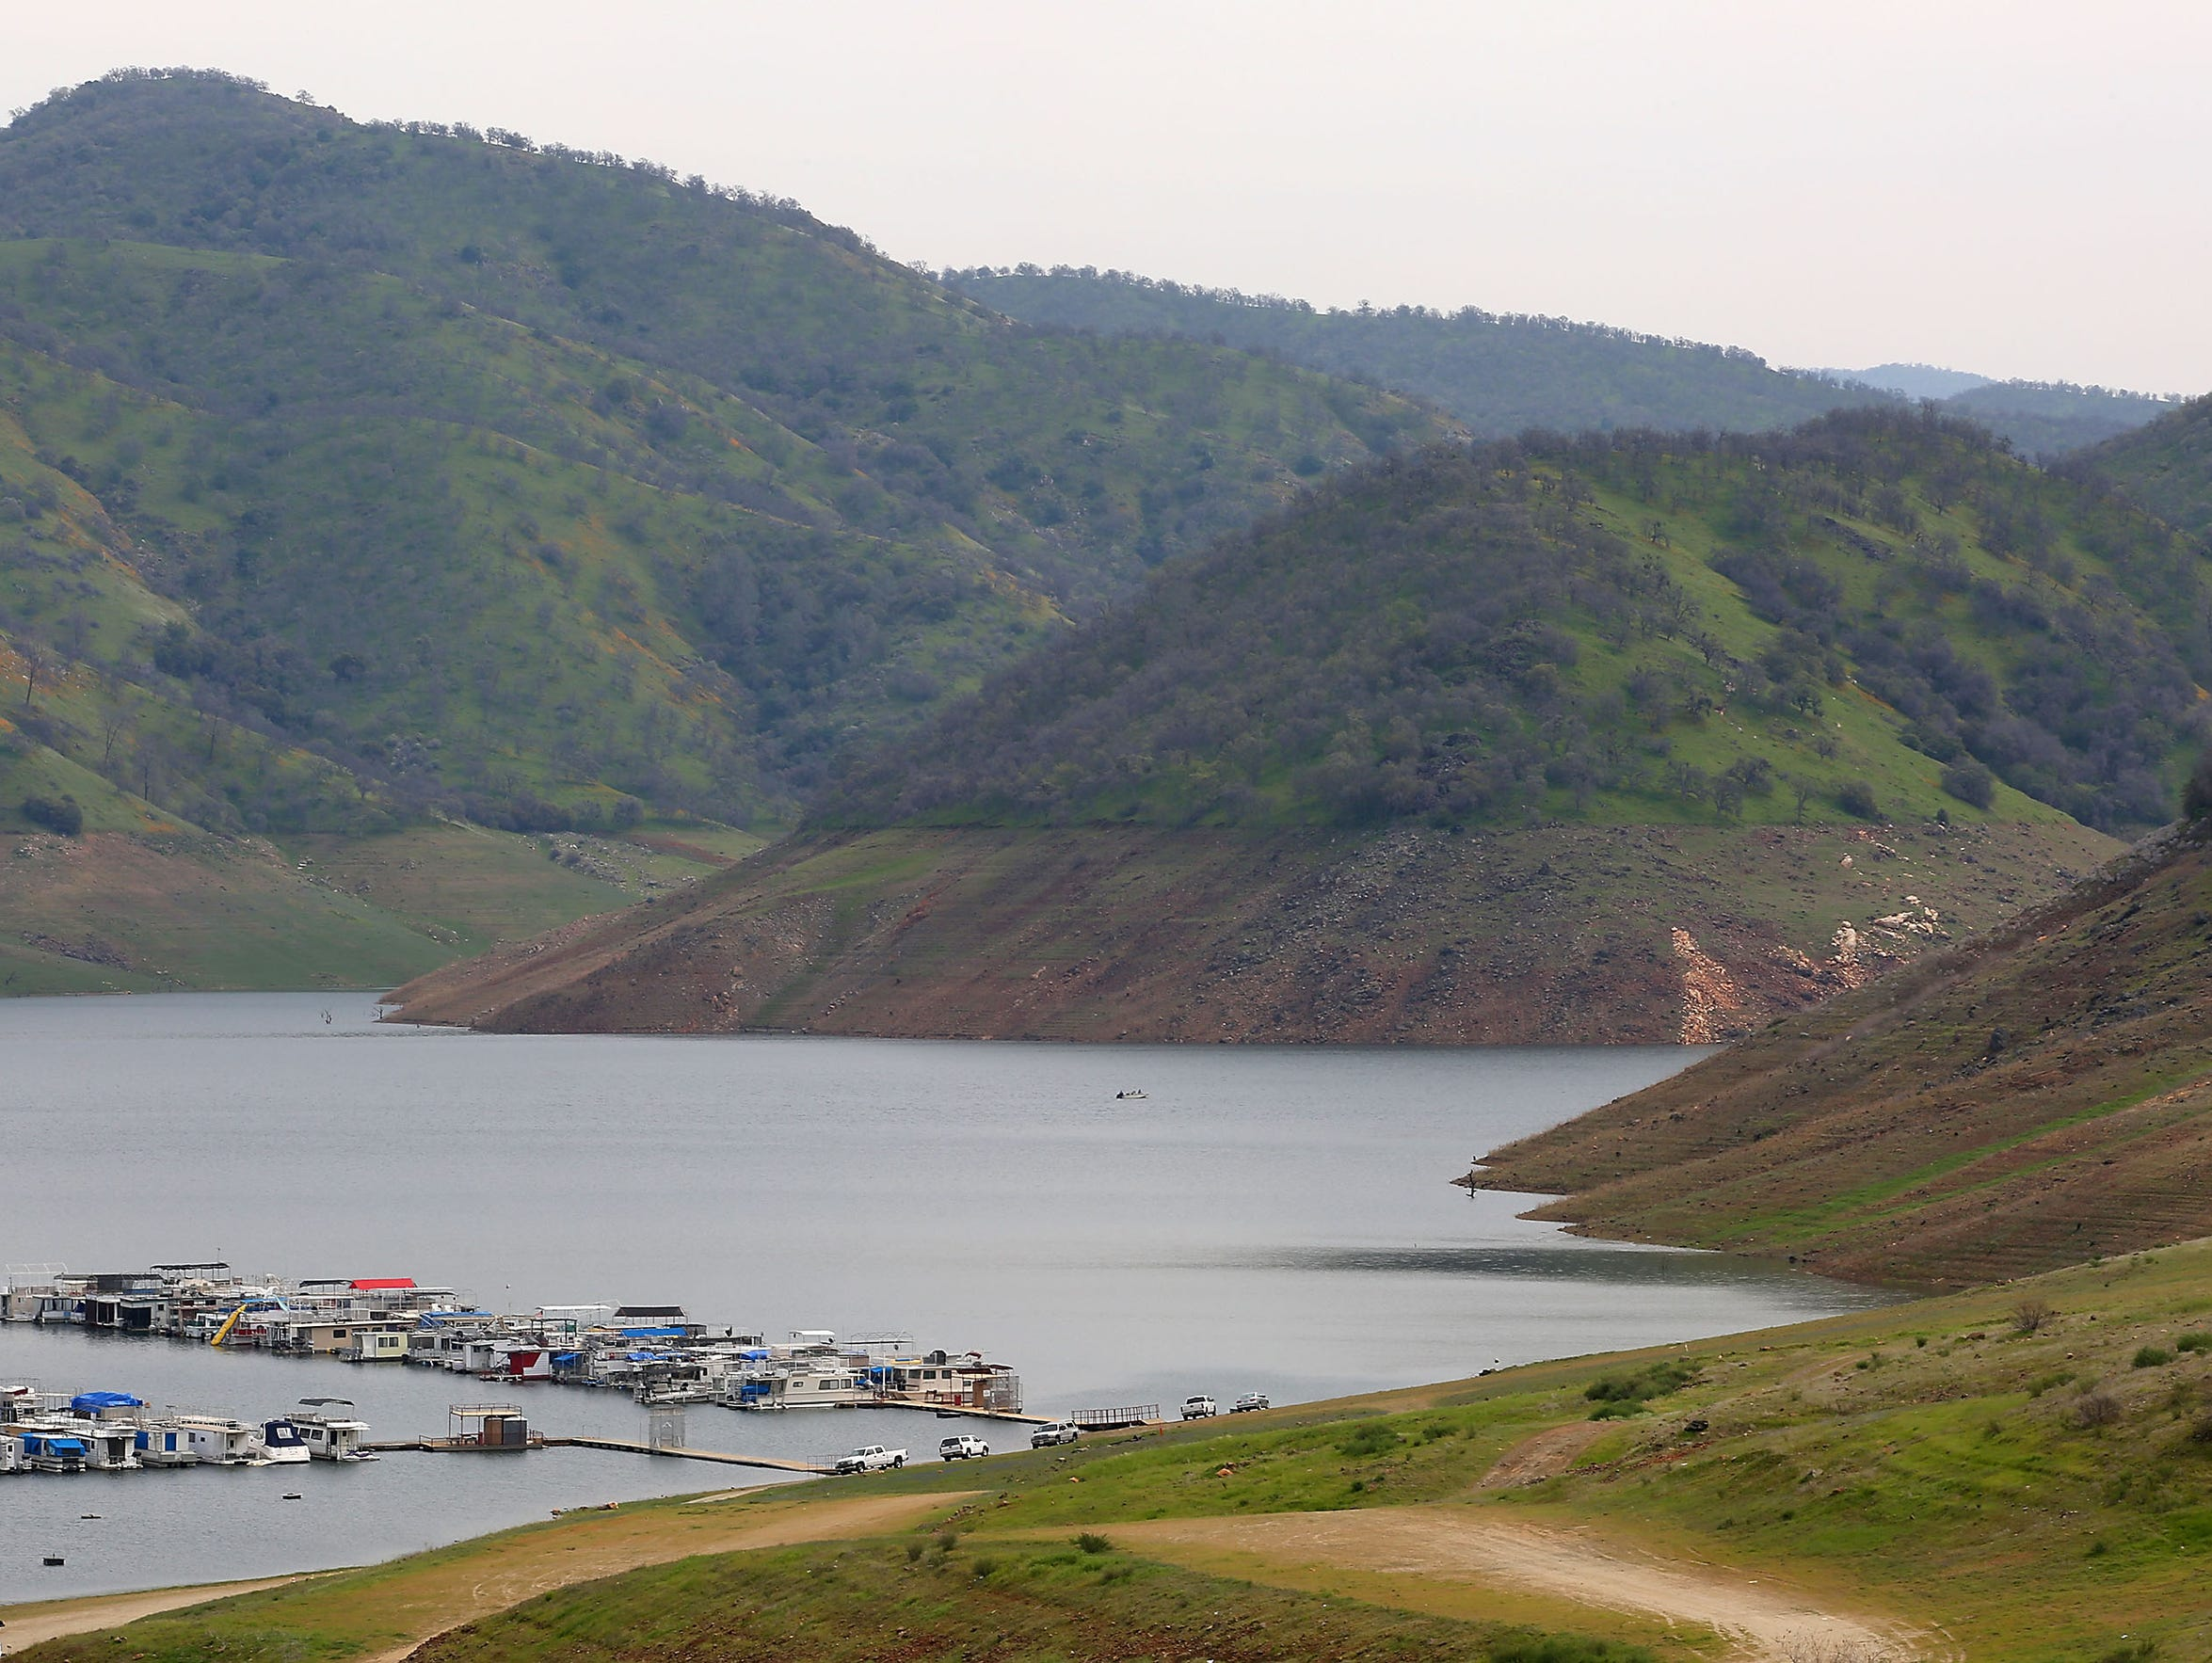 The levels of Pine Flat Reservoir near Fresno were